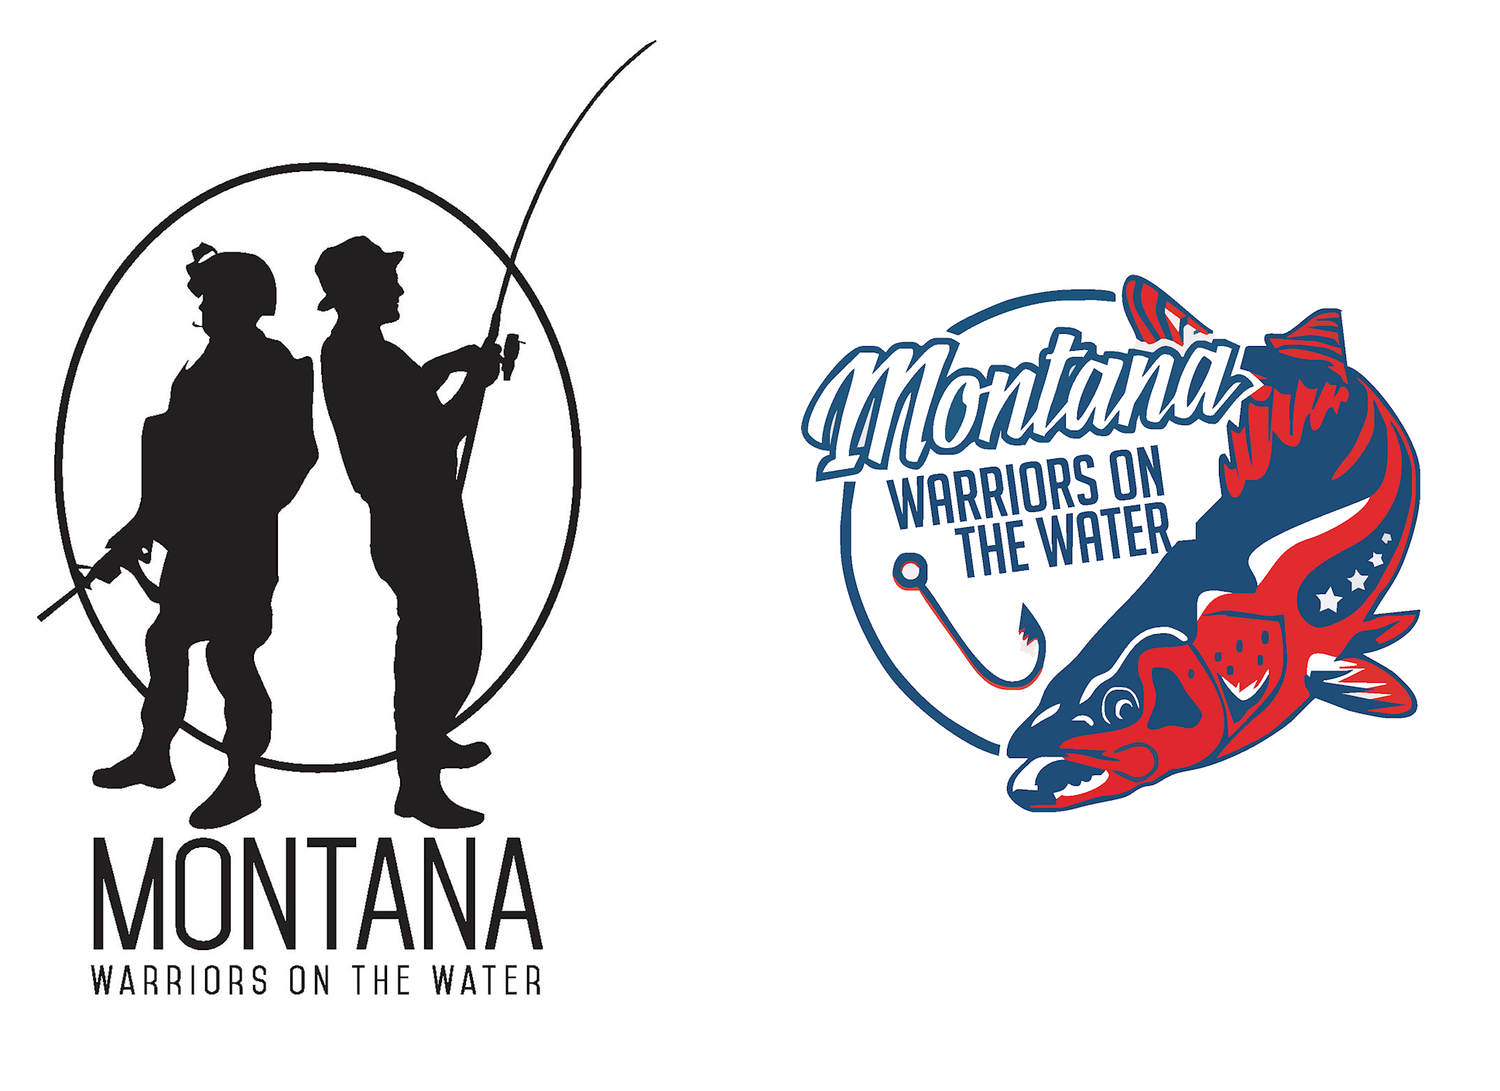 Montana Warriors on the Water